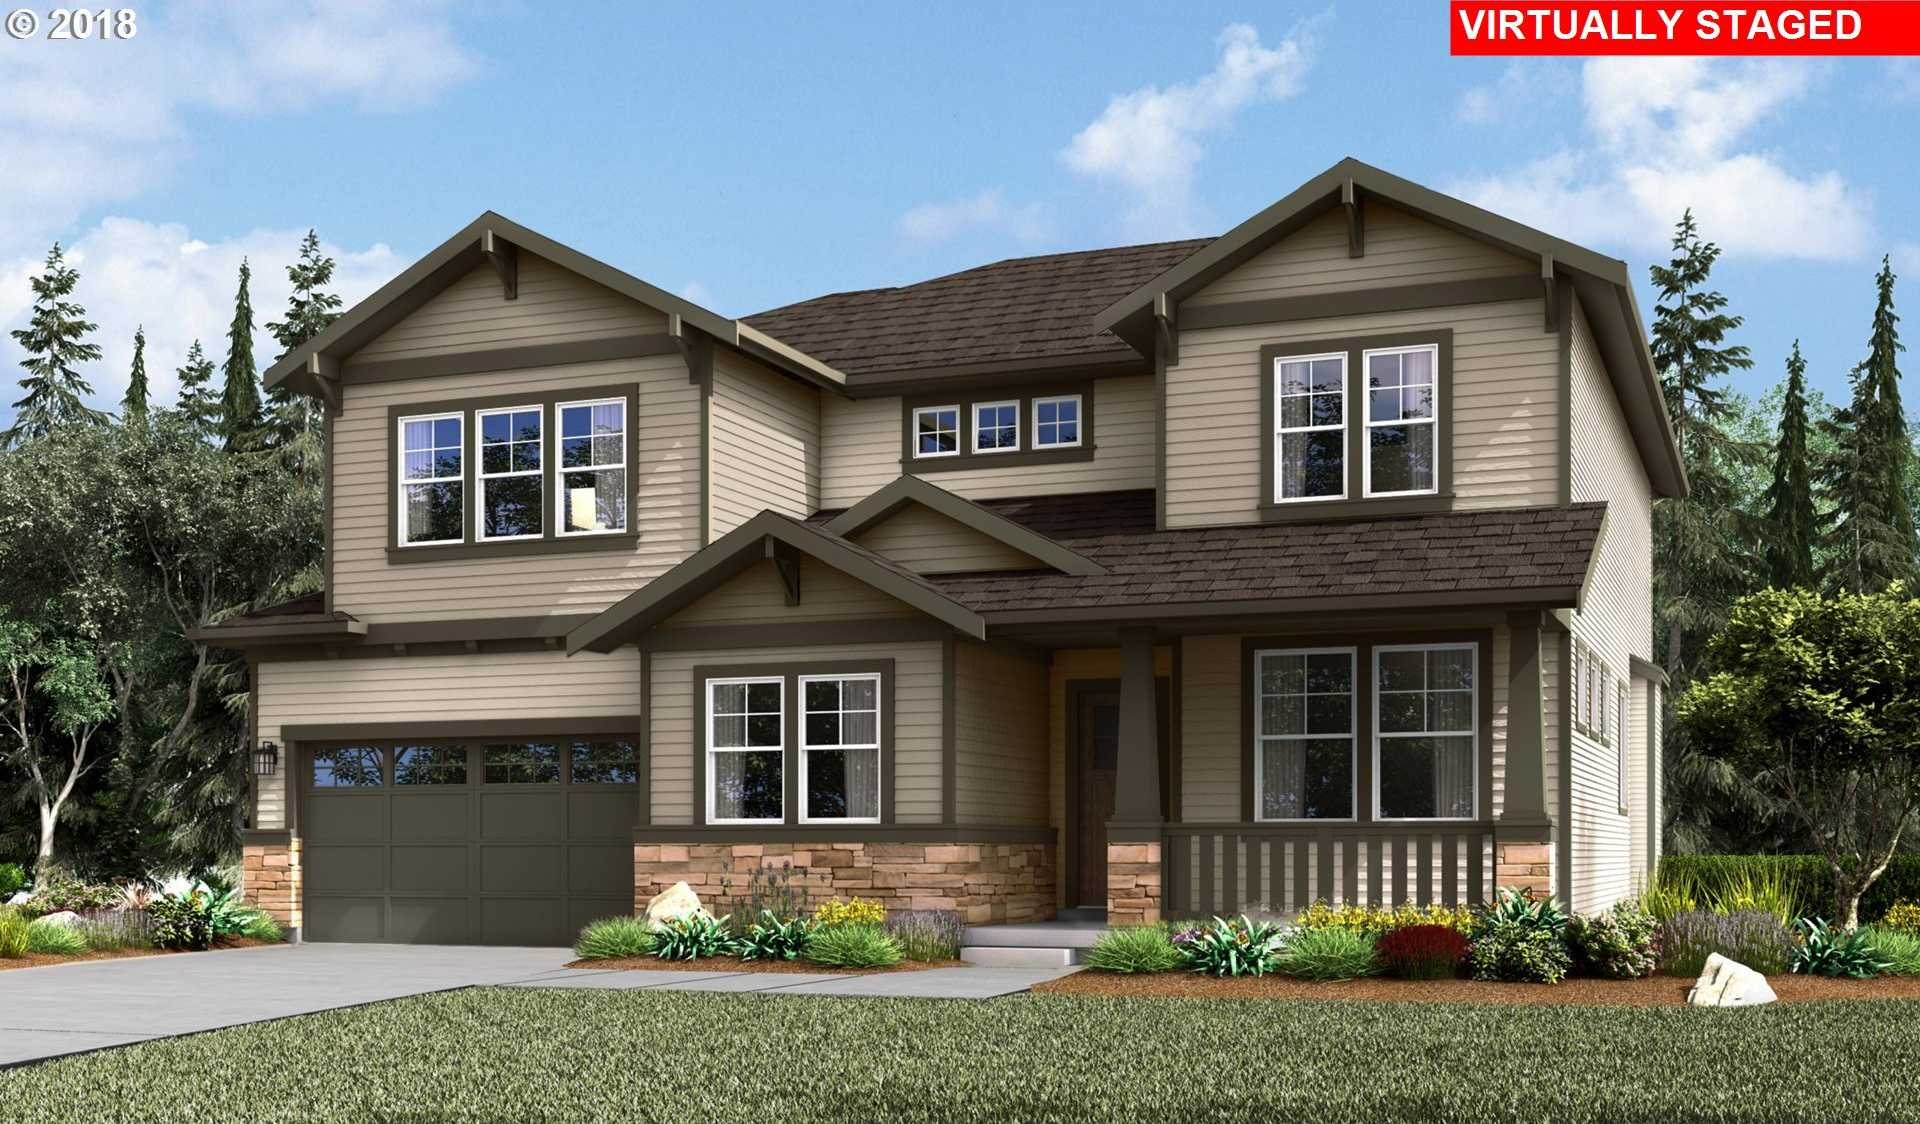 $699,990 - 4Br/3Ba -  for Sale in Eastridge At River Terrace, Beaverton